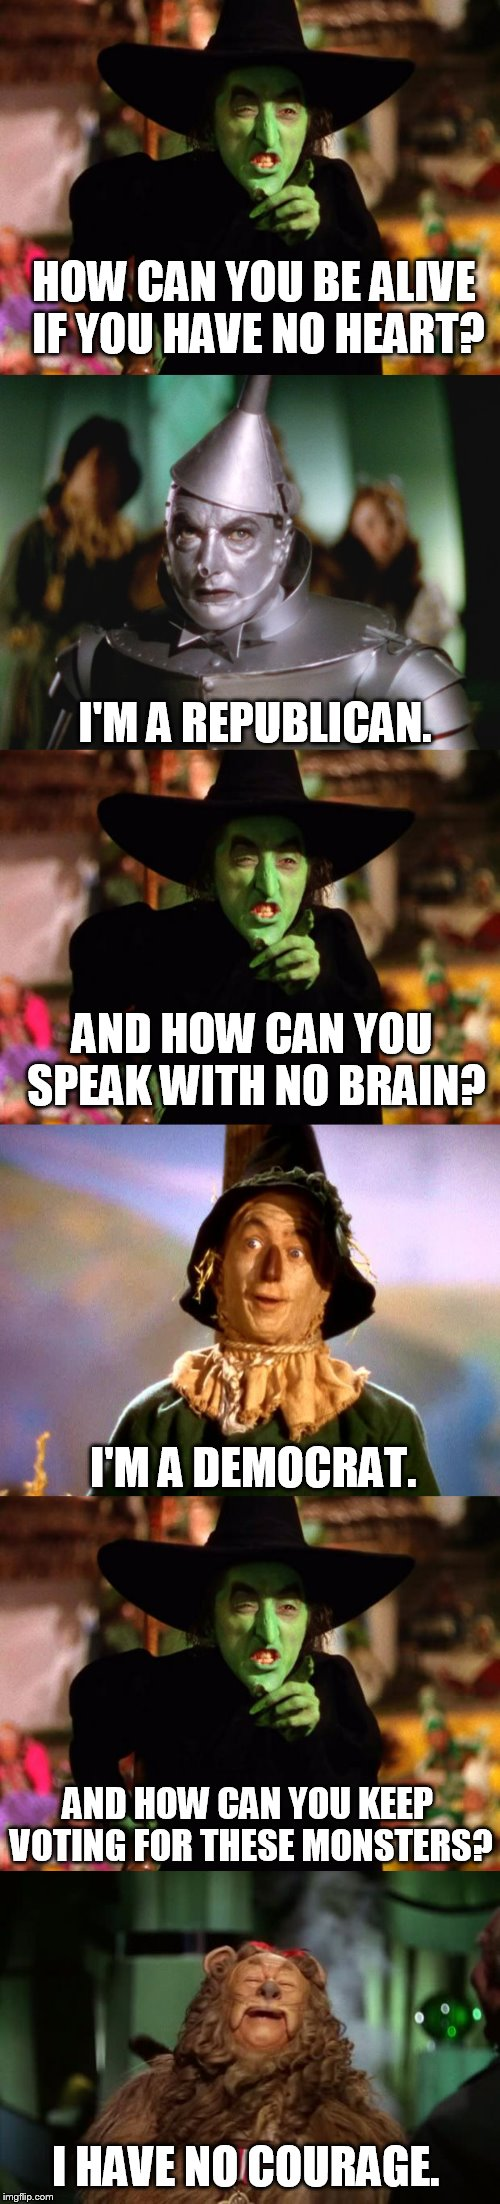 the two party system | HOW CAN YOU BE ALIVE IF YOU HAVE NO HEART? I'M A REPUBLICAN. AND HOW CAN YOU SPEAK WITH NO BRAIN? I'M A DEMOCRAT. AND HOW CAN YOU KEEP VOTIN | image tagged in wicked witch,tin man,cowardly lion,memes | made w/ Imgflip meme maker